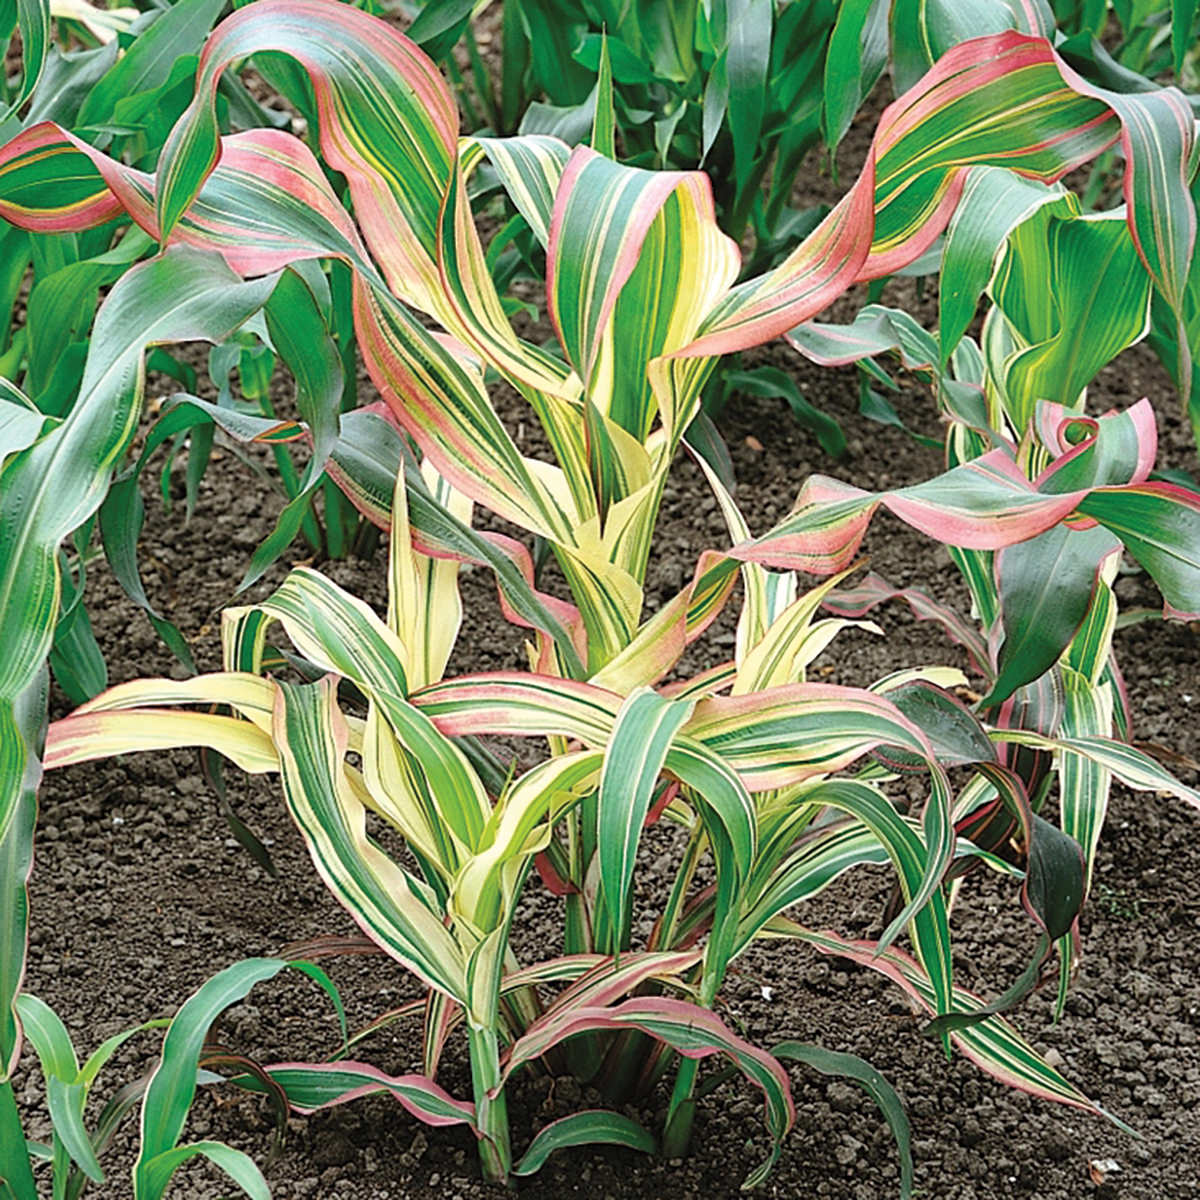 Japonica Striped Maize Ornamental Corn Seeds Ne Seed